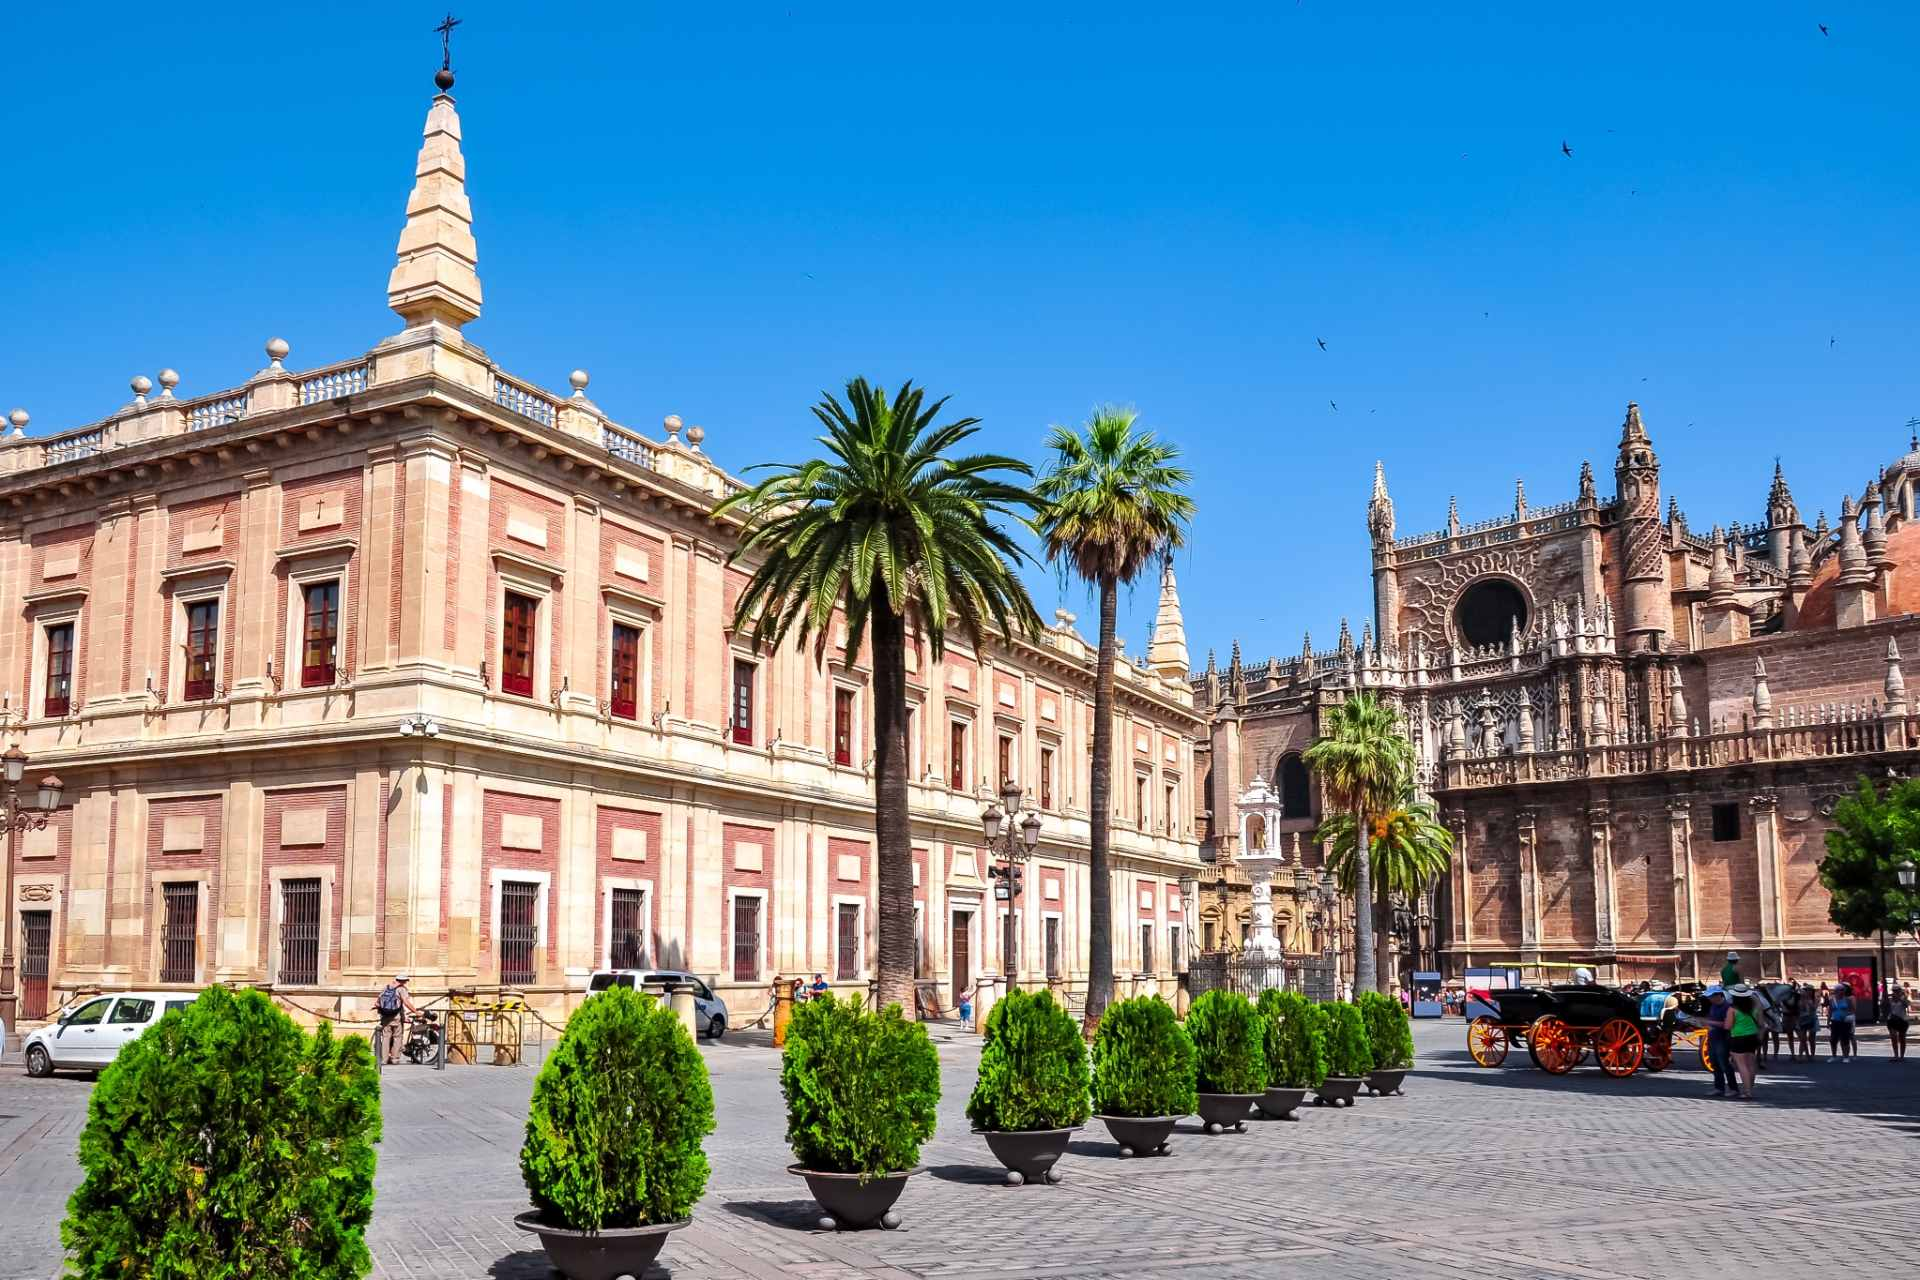 archive-of-the-indies-on-summers-day-free-things-to-do-in-seville